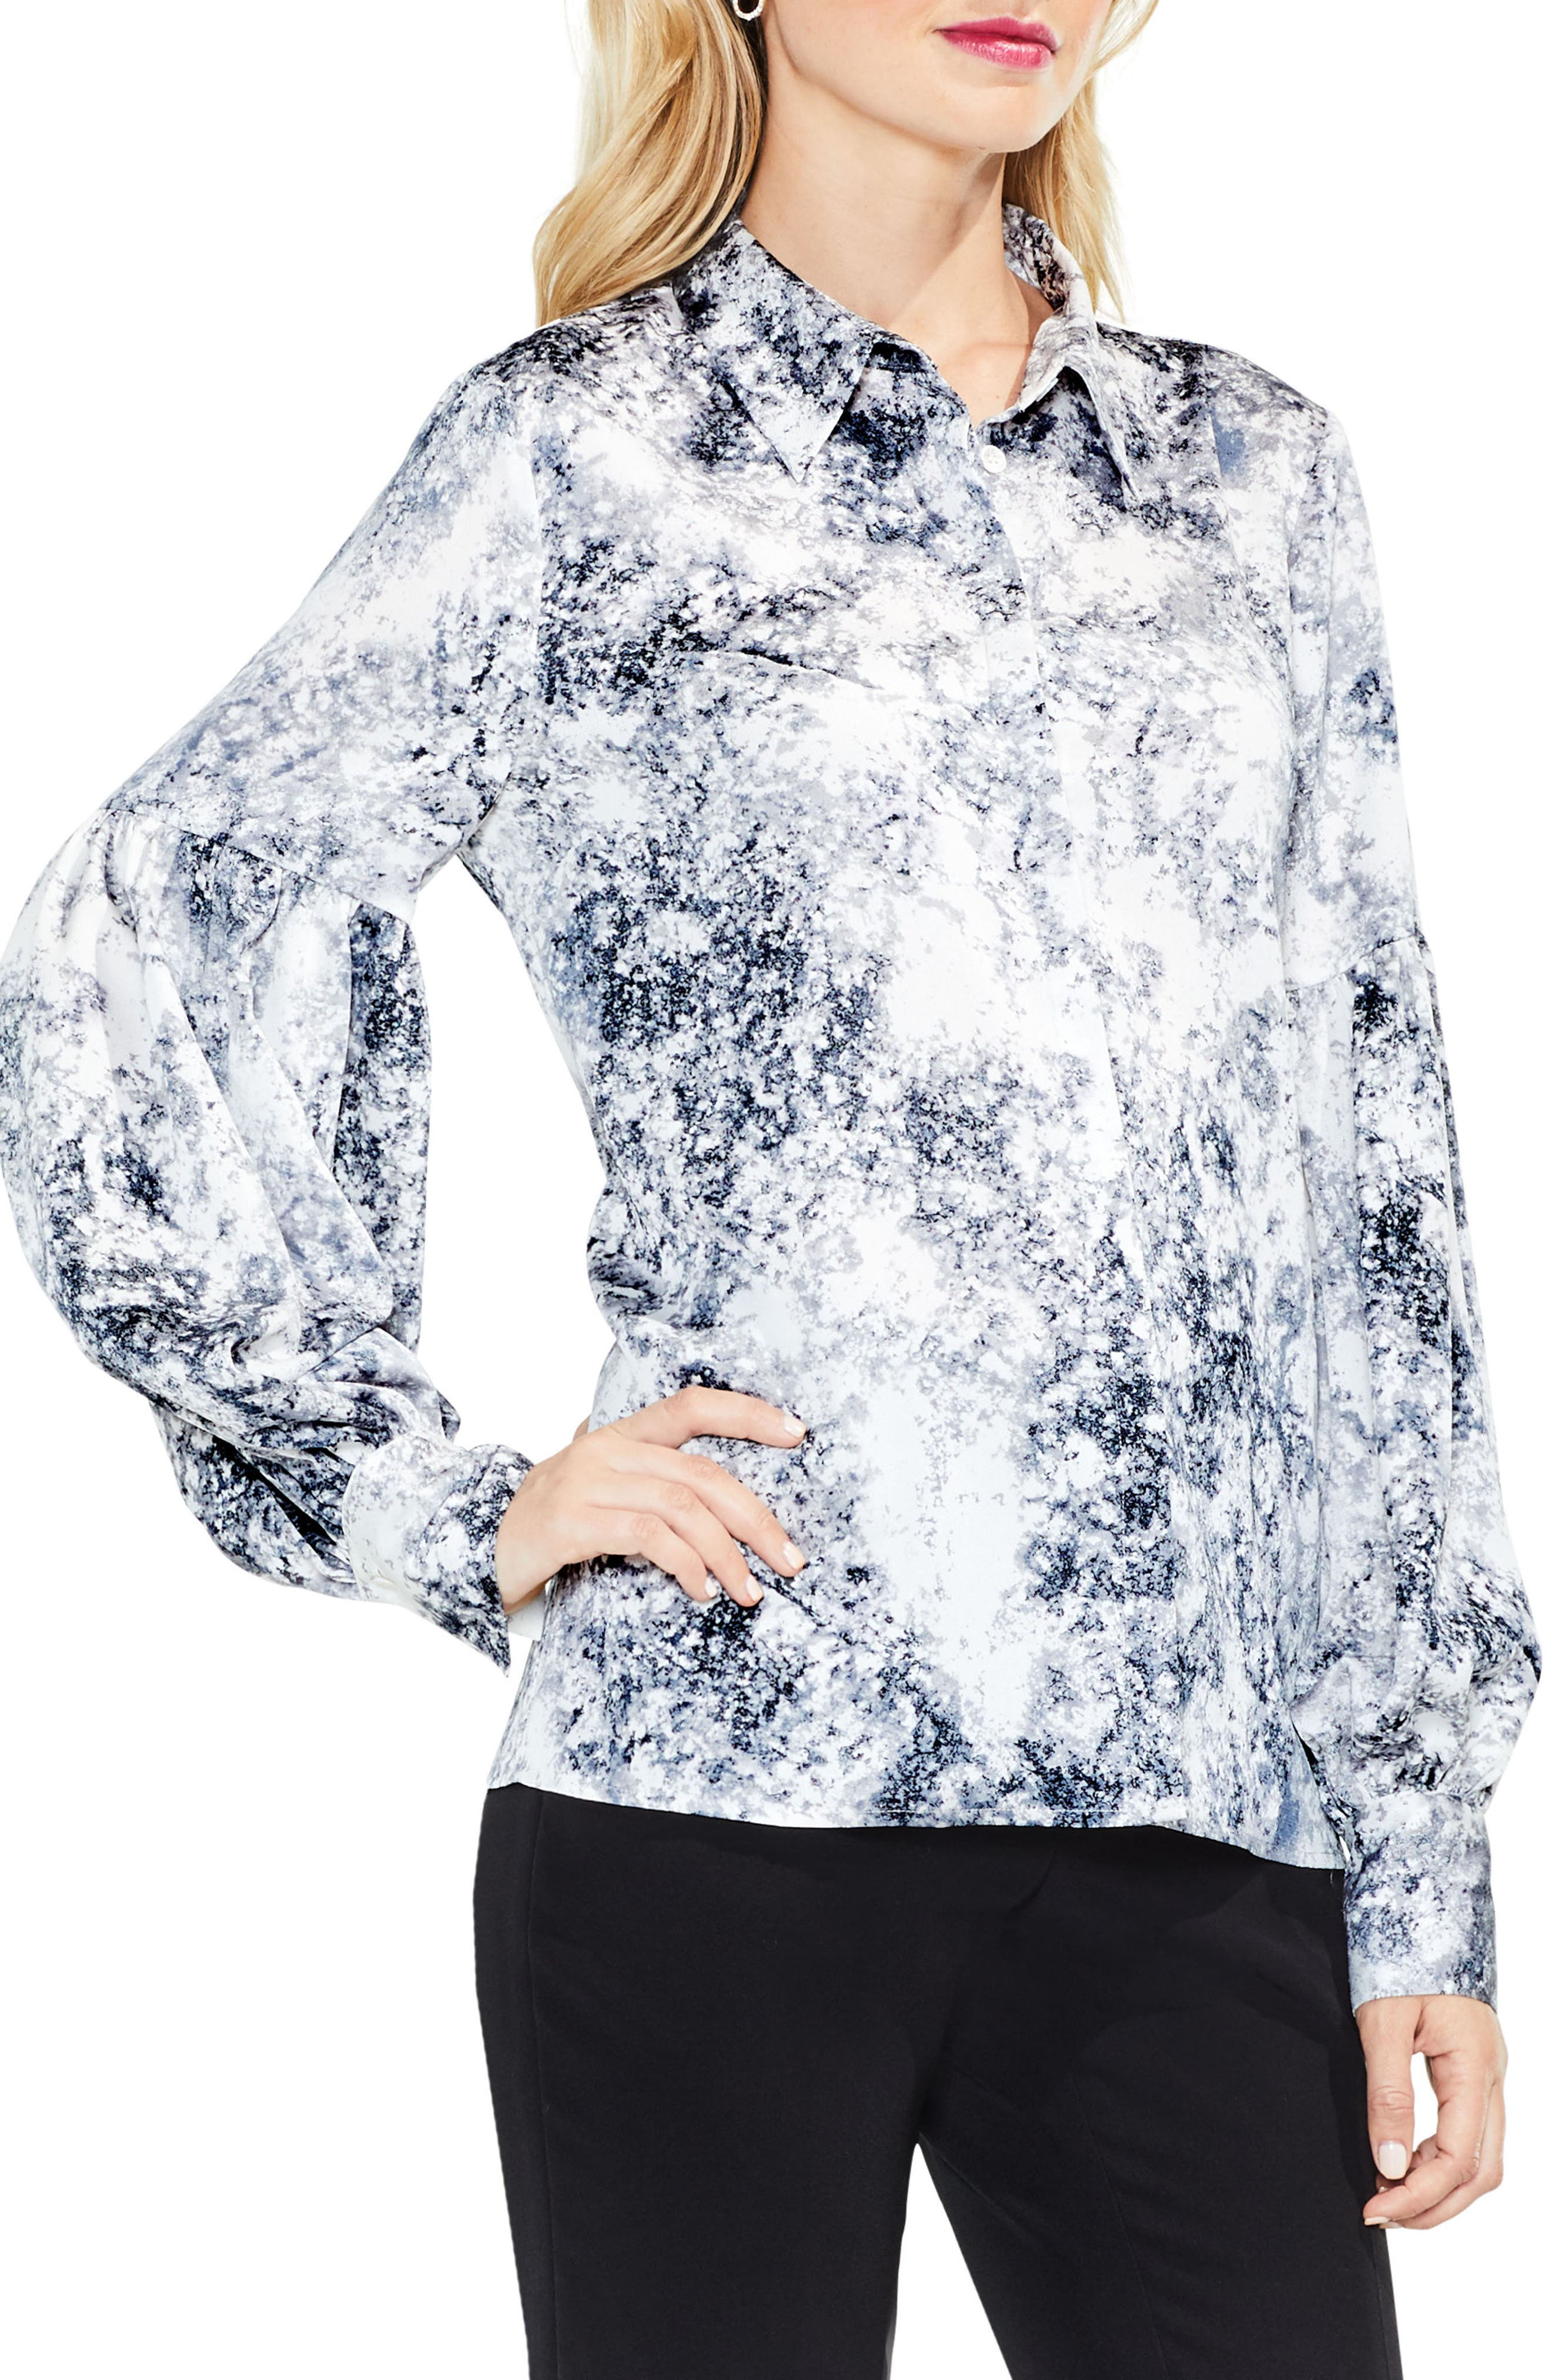 Speckle Atmosphere Top,                         Main,                         color, Antique White